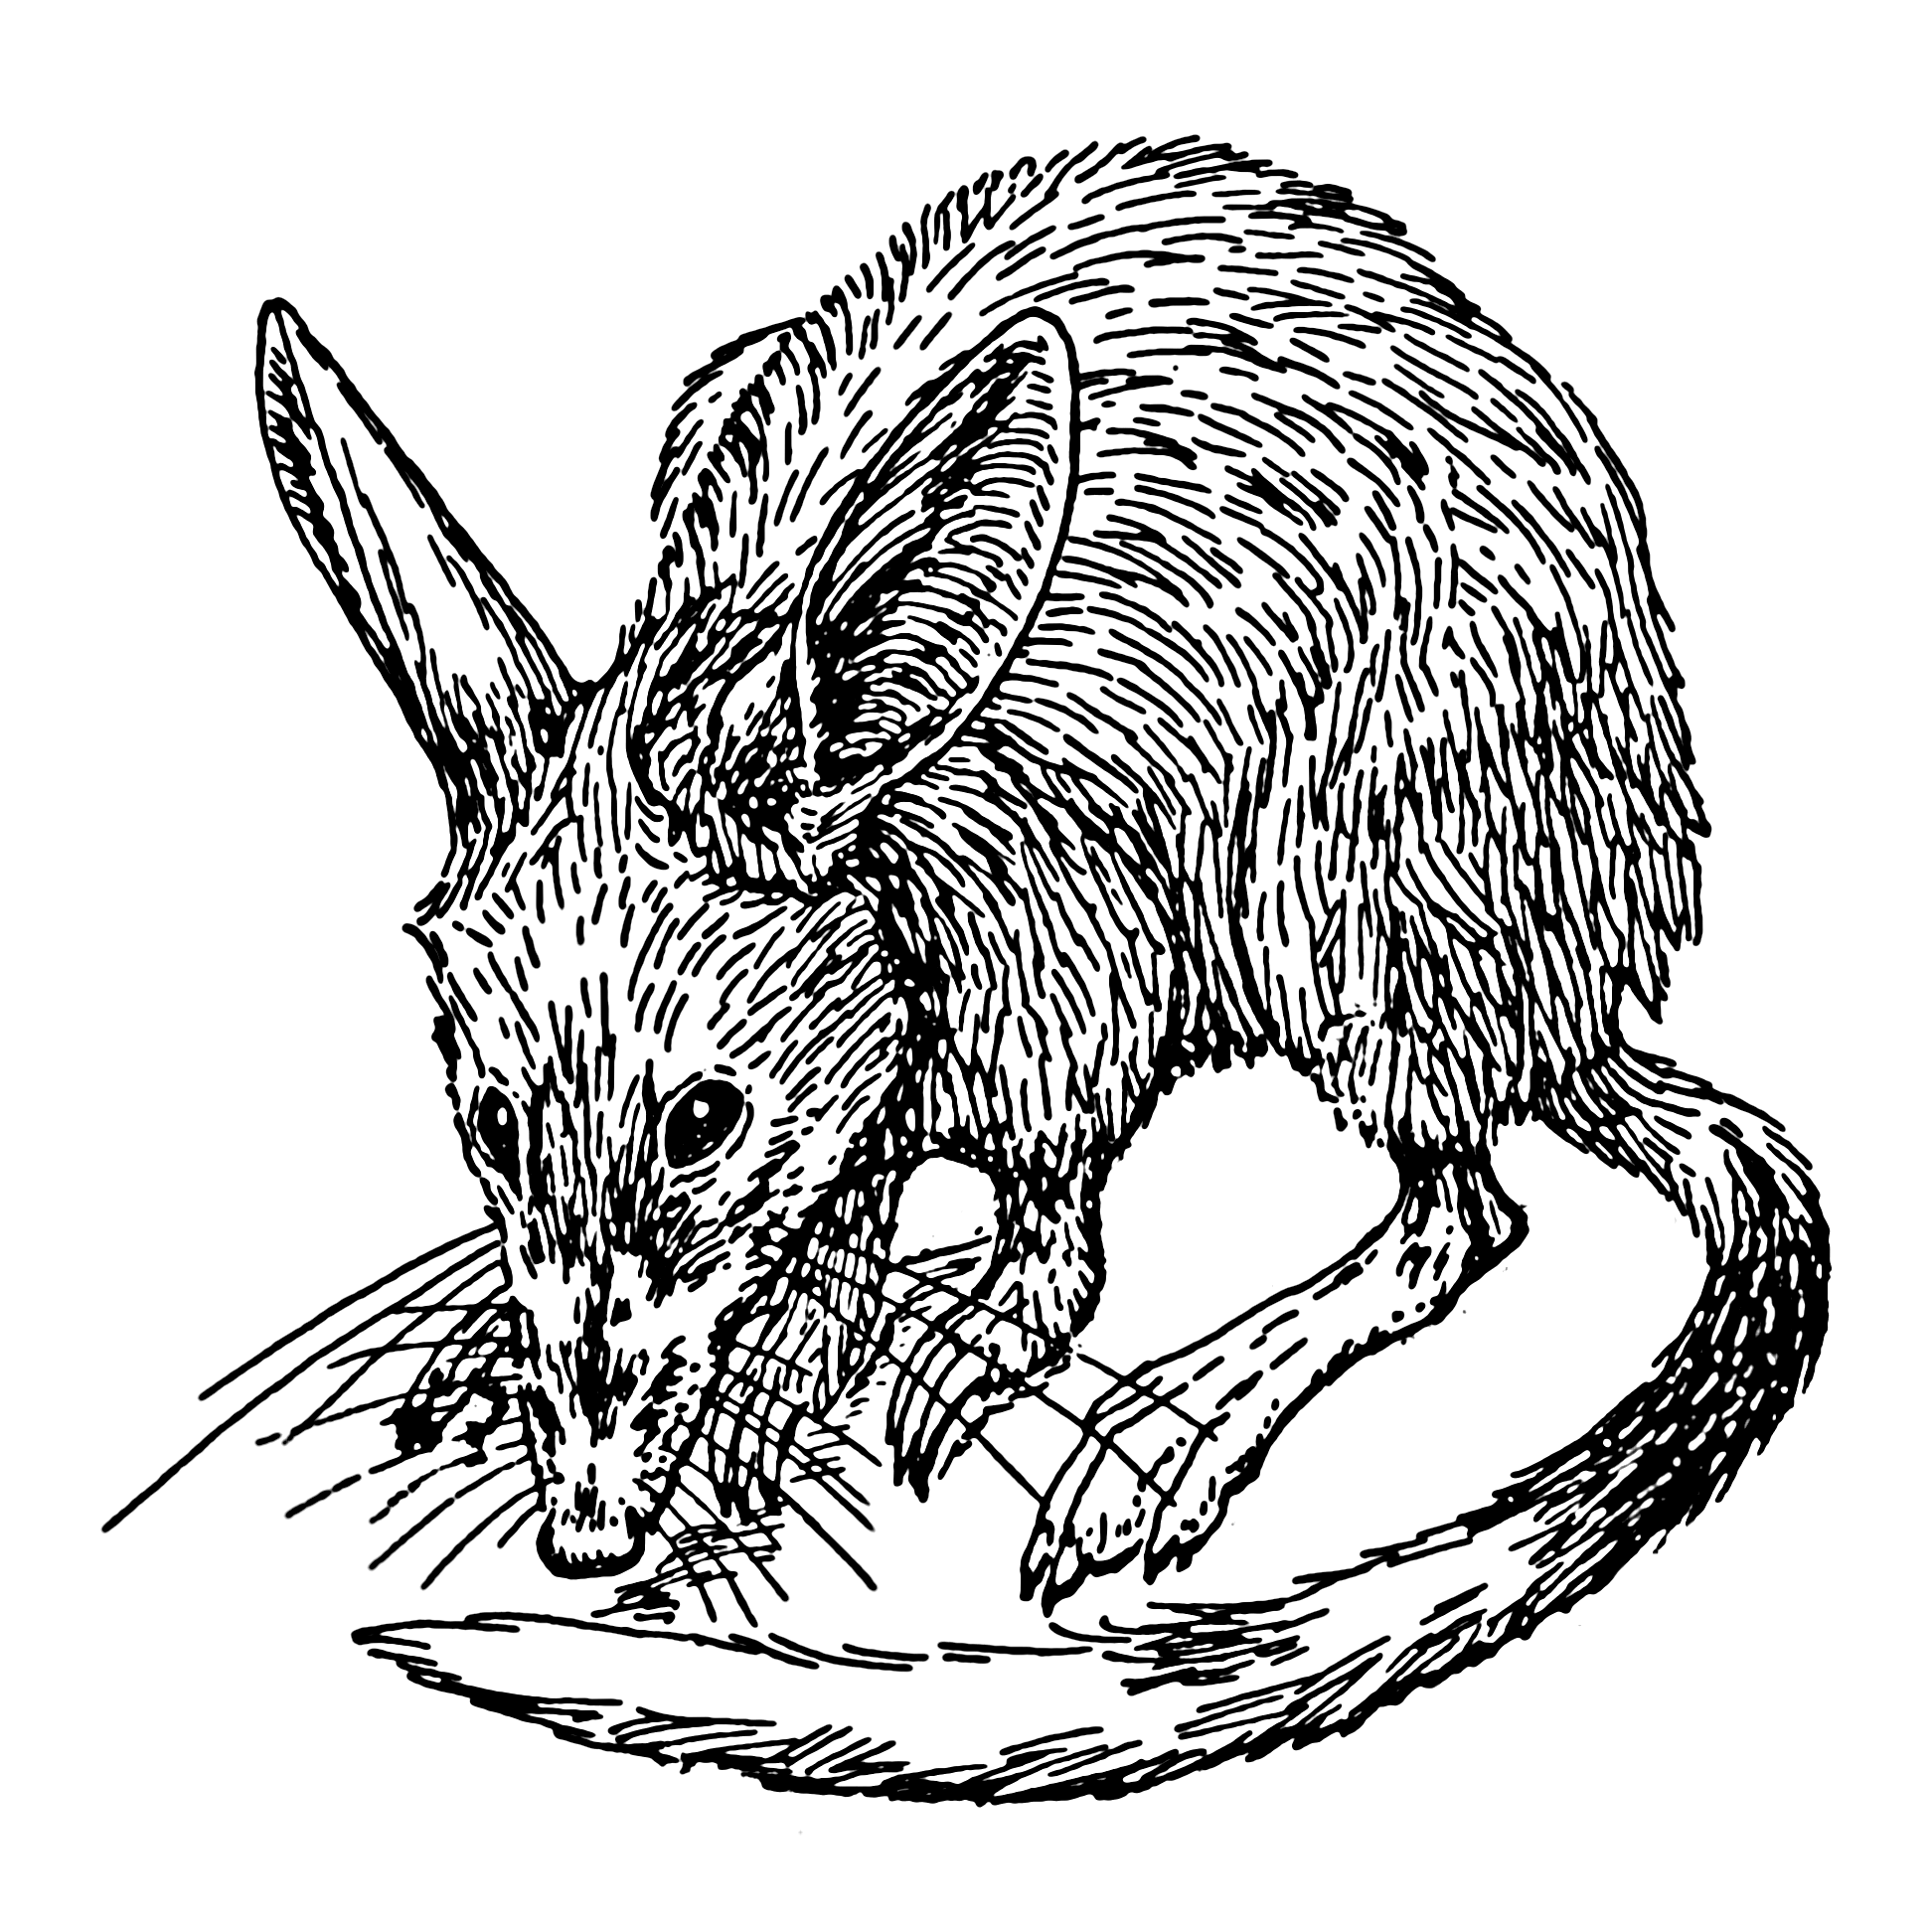 Line Drawing Wikipedia : File bandicoot psf wikimedia commons